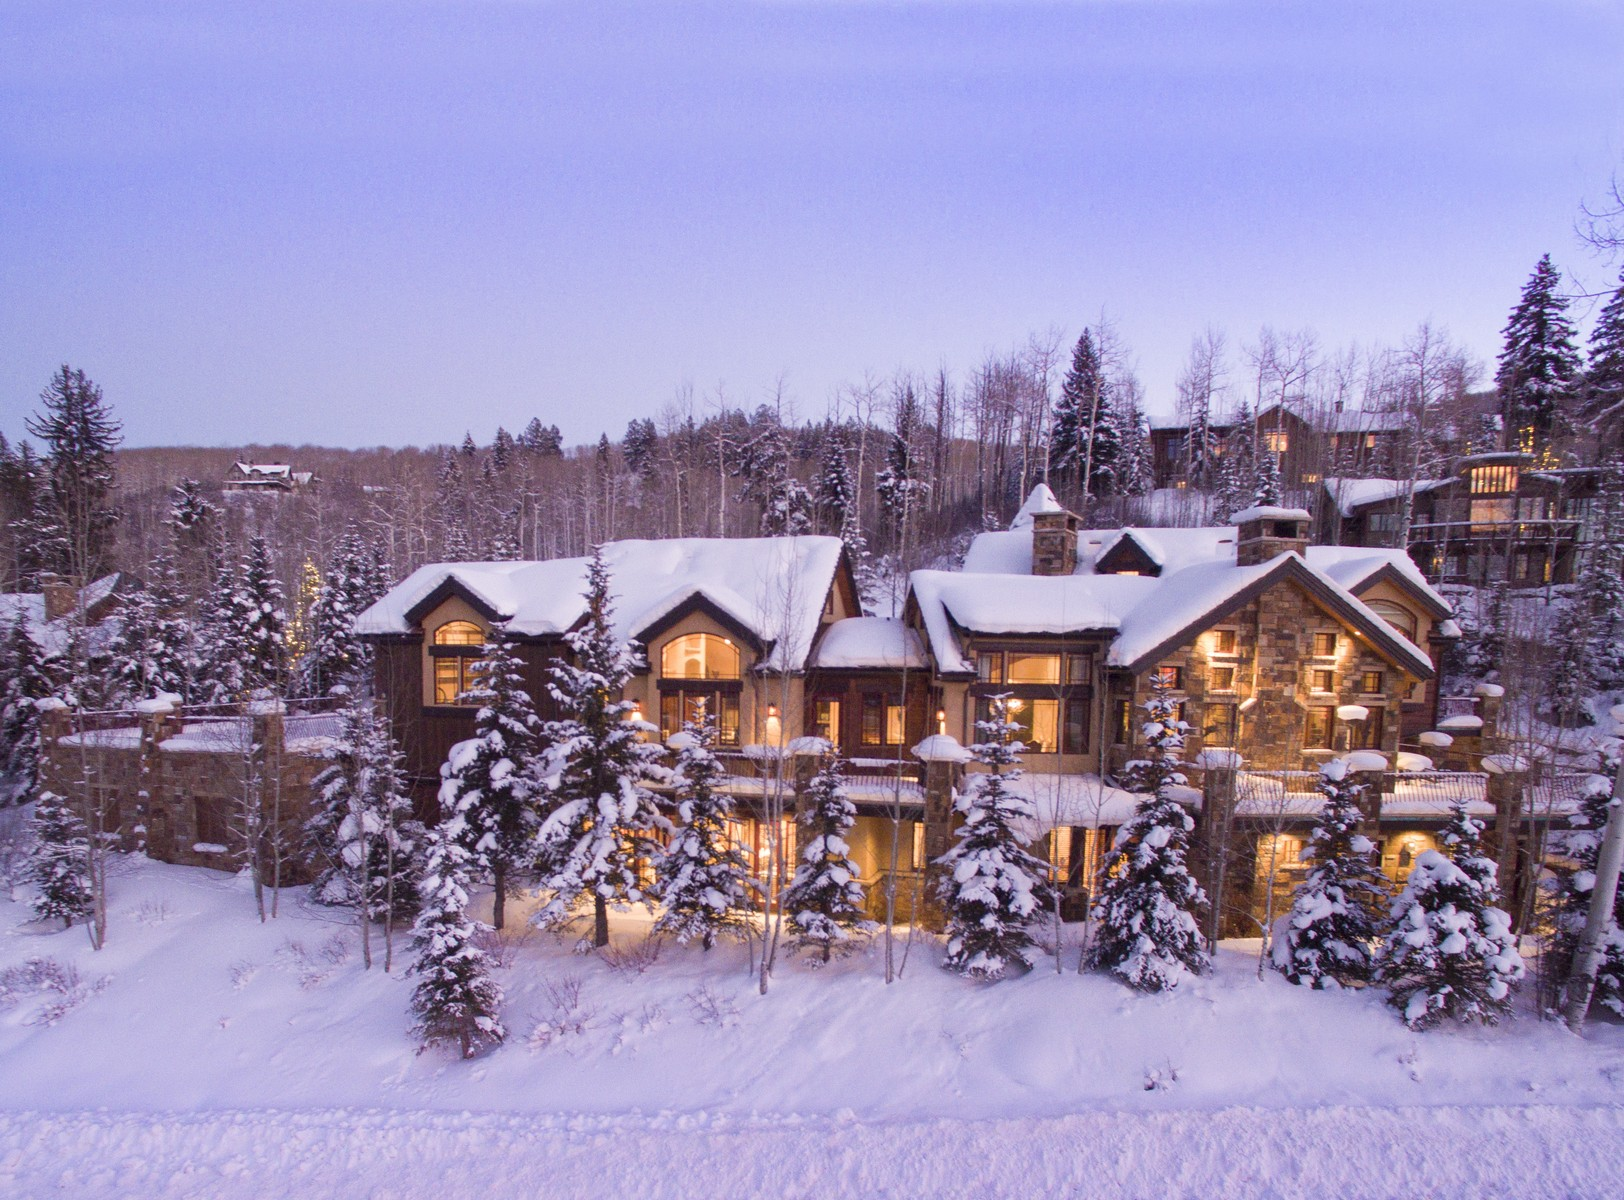 Maison unifamiliale pour l Vente à Home in The Pines 400 Pine Crest Drive Snowmass Village, Colorado, 81615 États-Unis